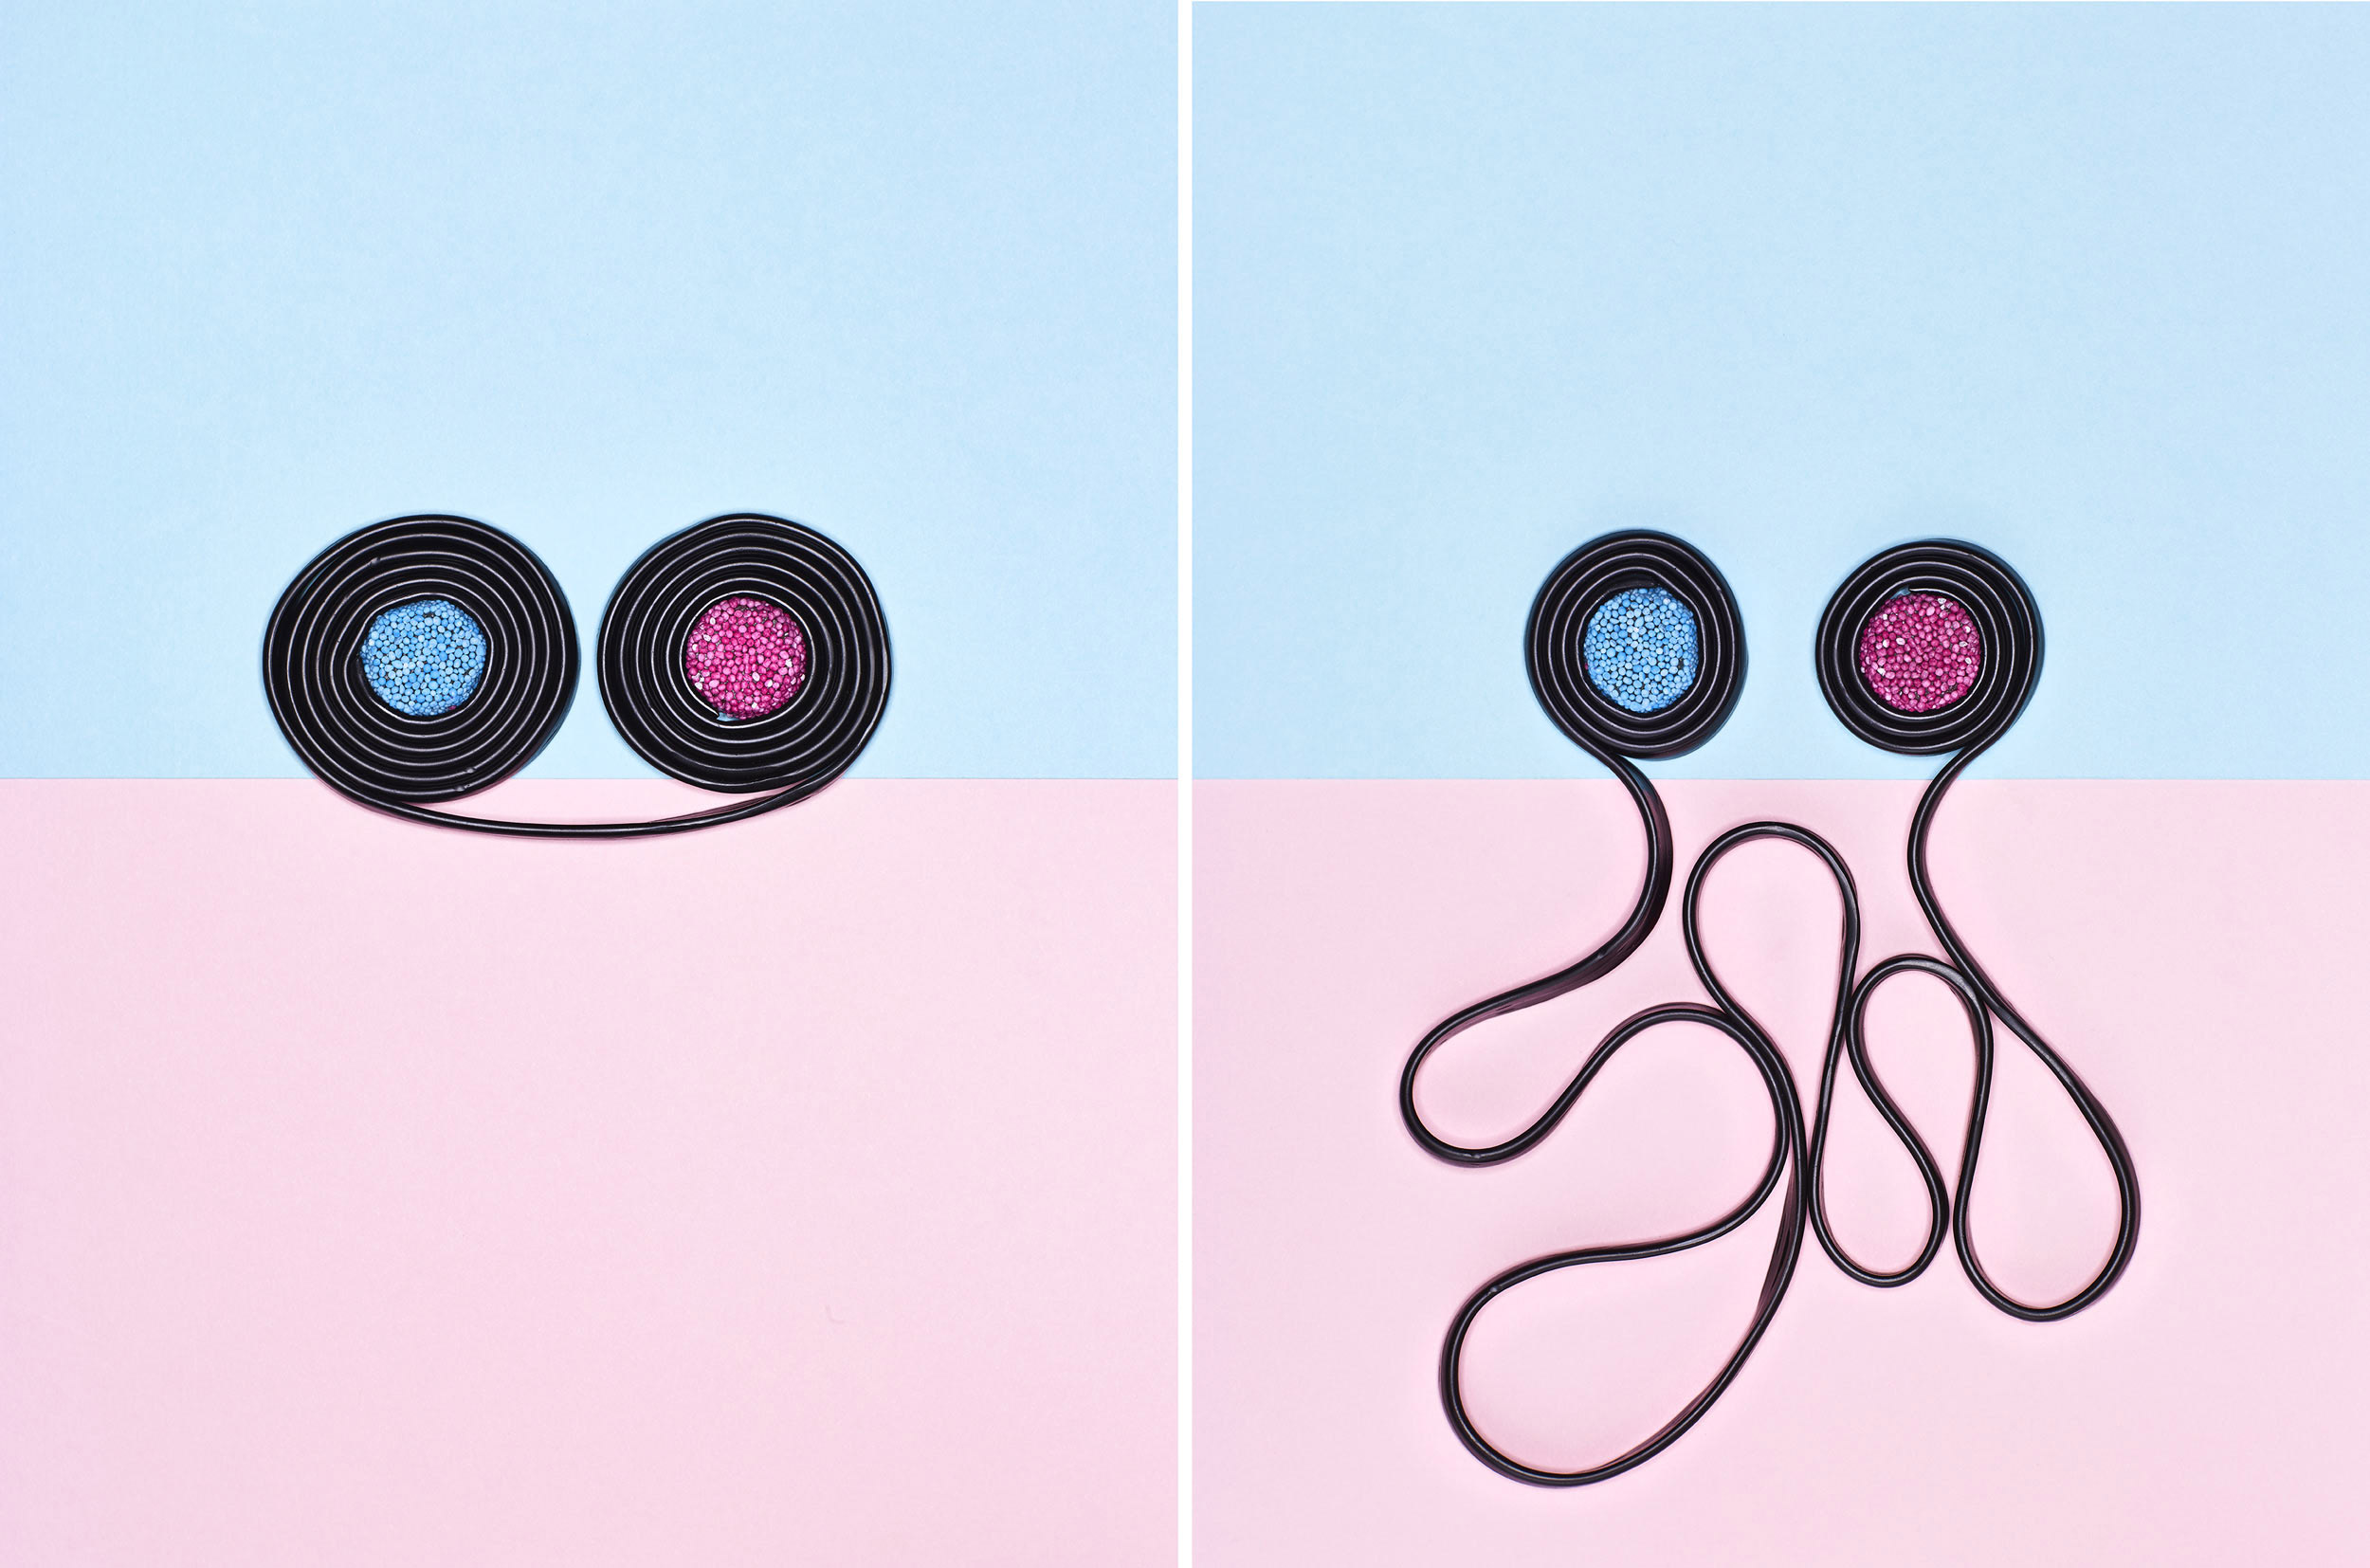 two liquorice wheels on pink and blue backgrounds communicating